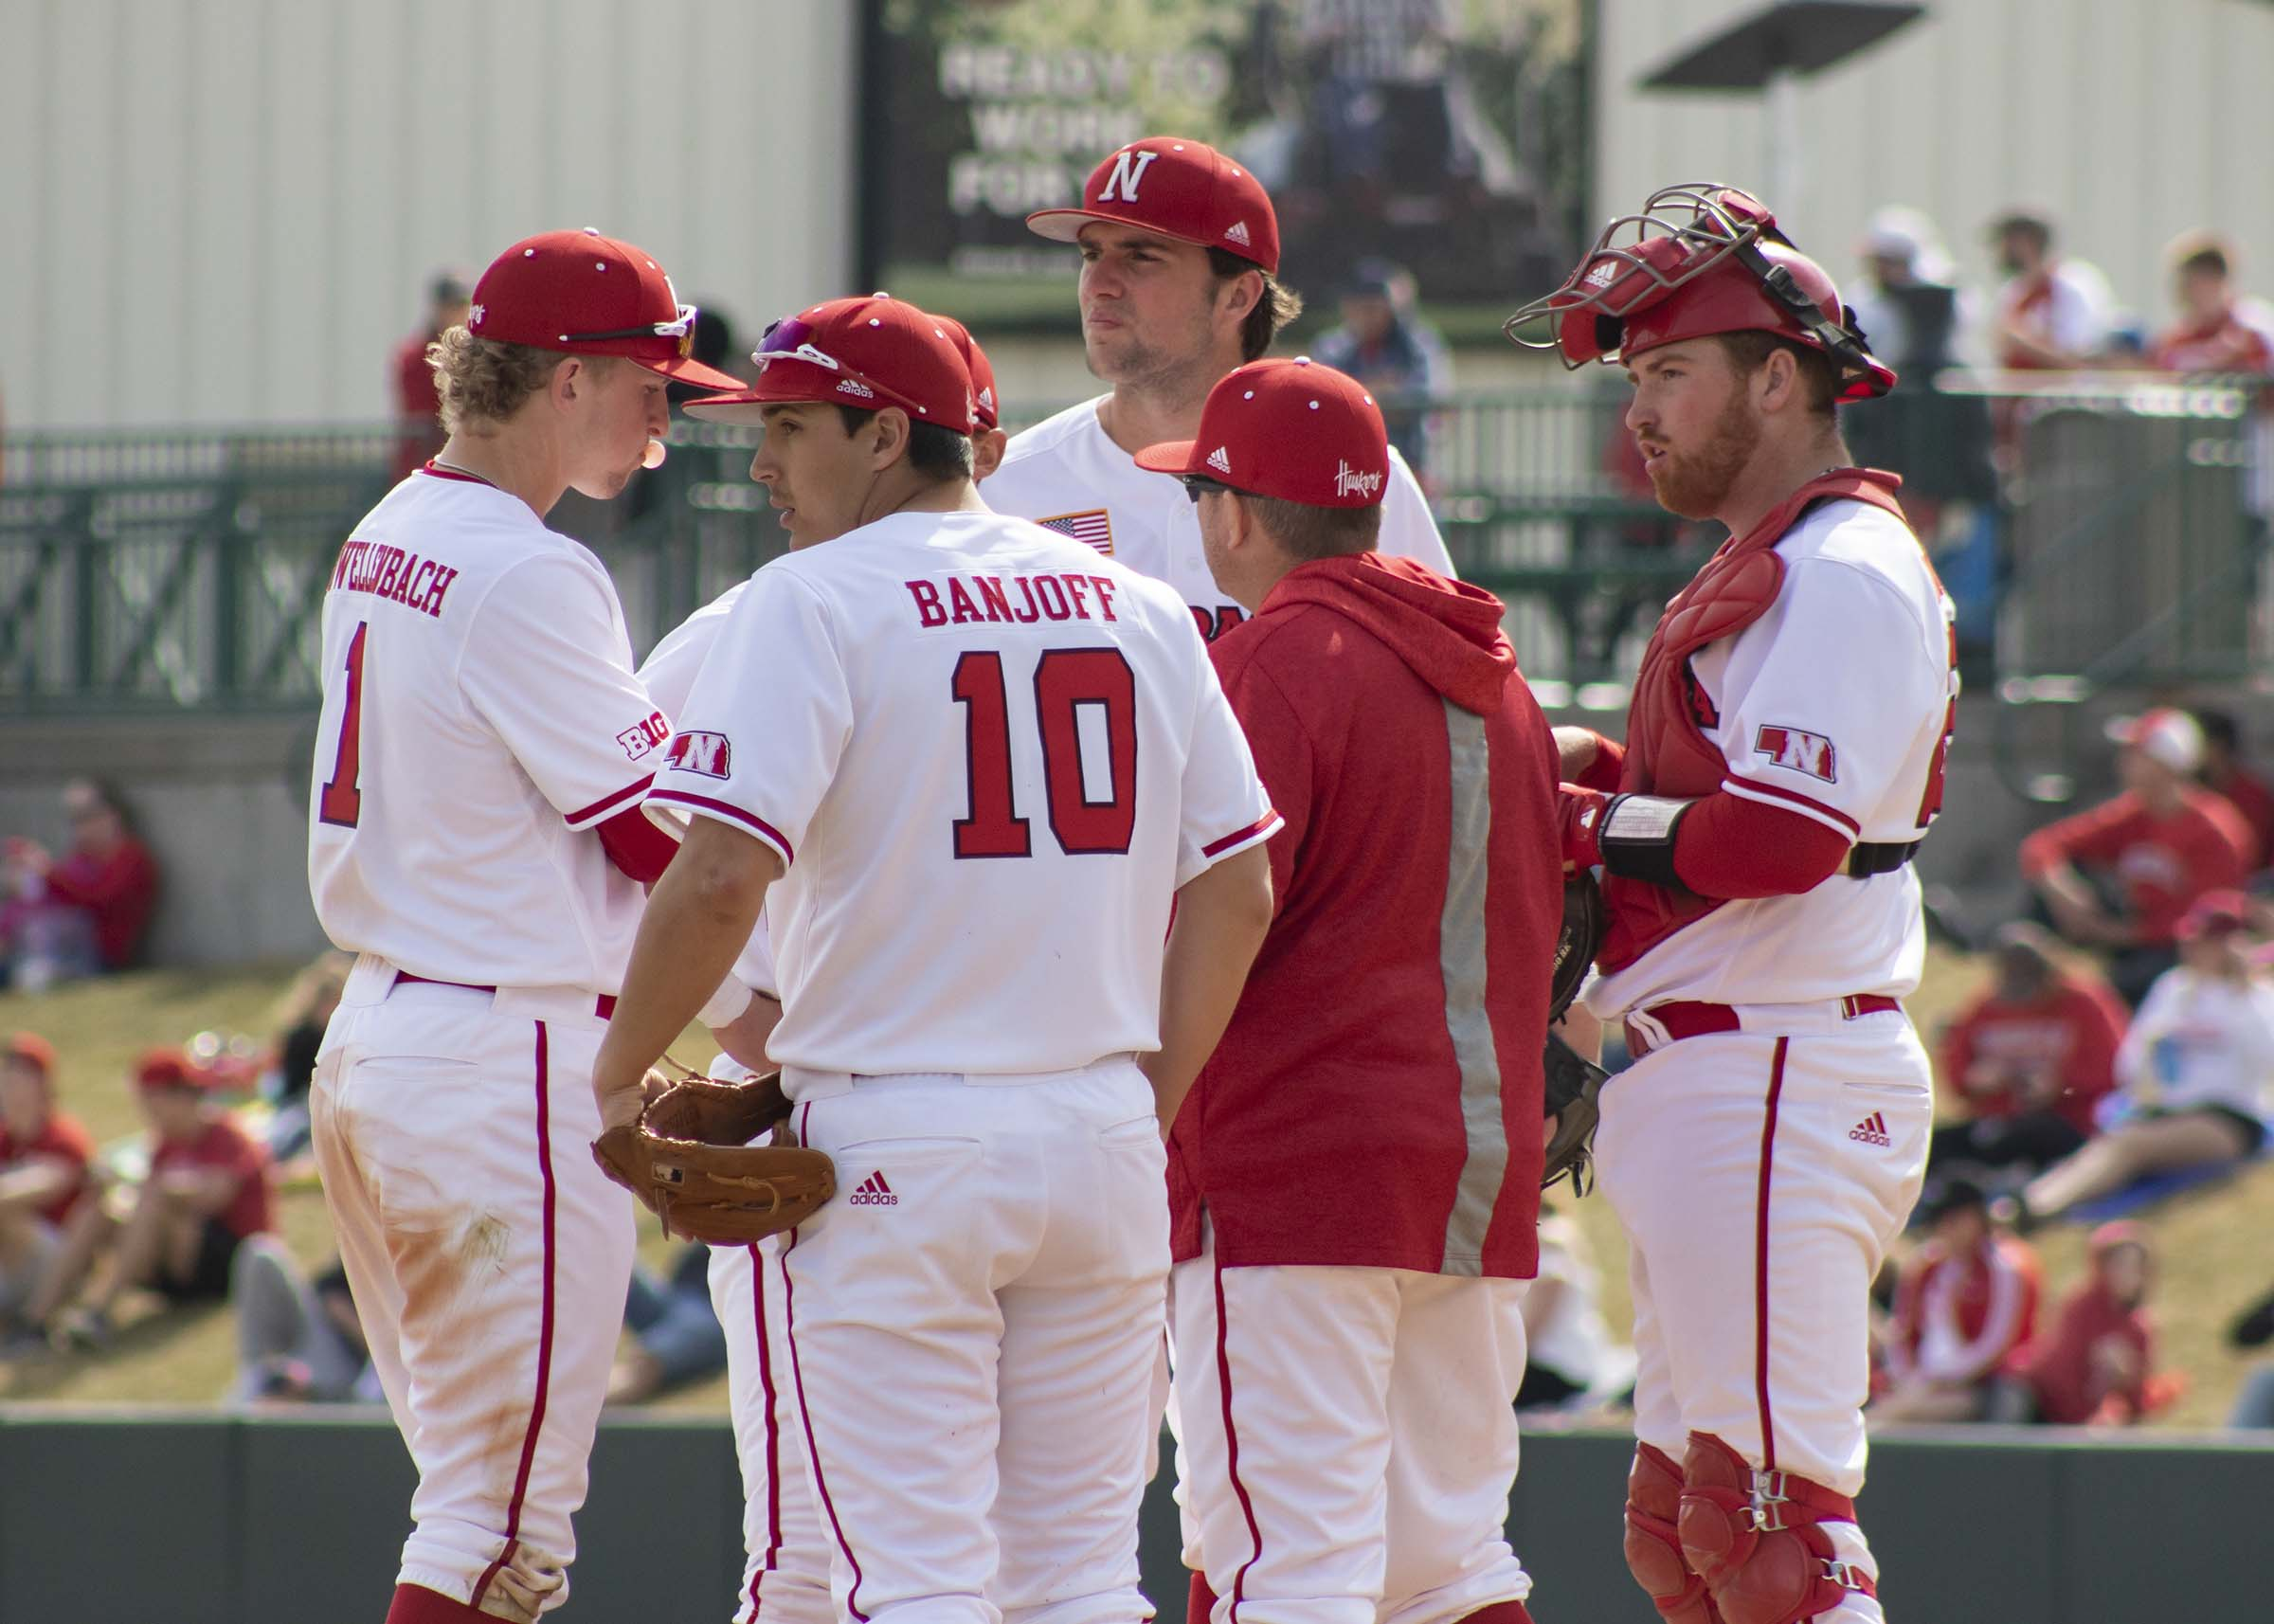 Husker Baseball Scrimmage to be Live Streamed Thursday